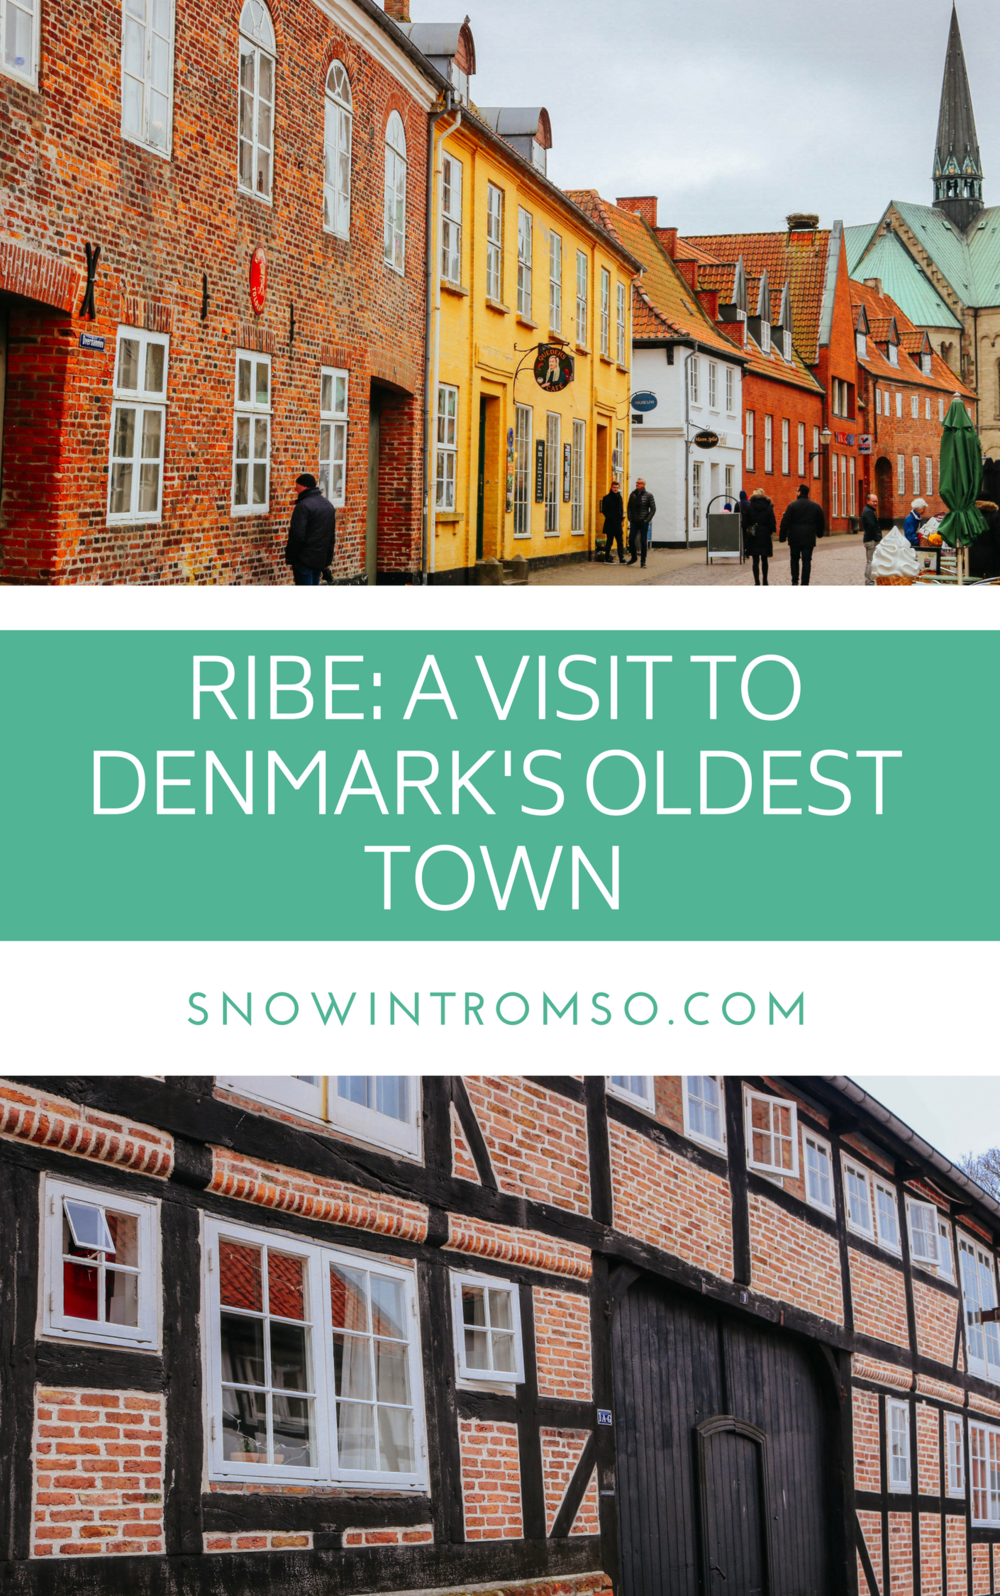 Find out why Denmark's oldest town is worth taking a detour when visiting the country!